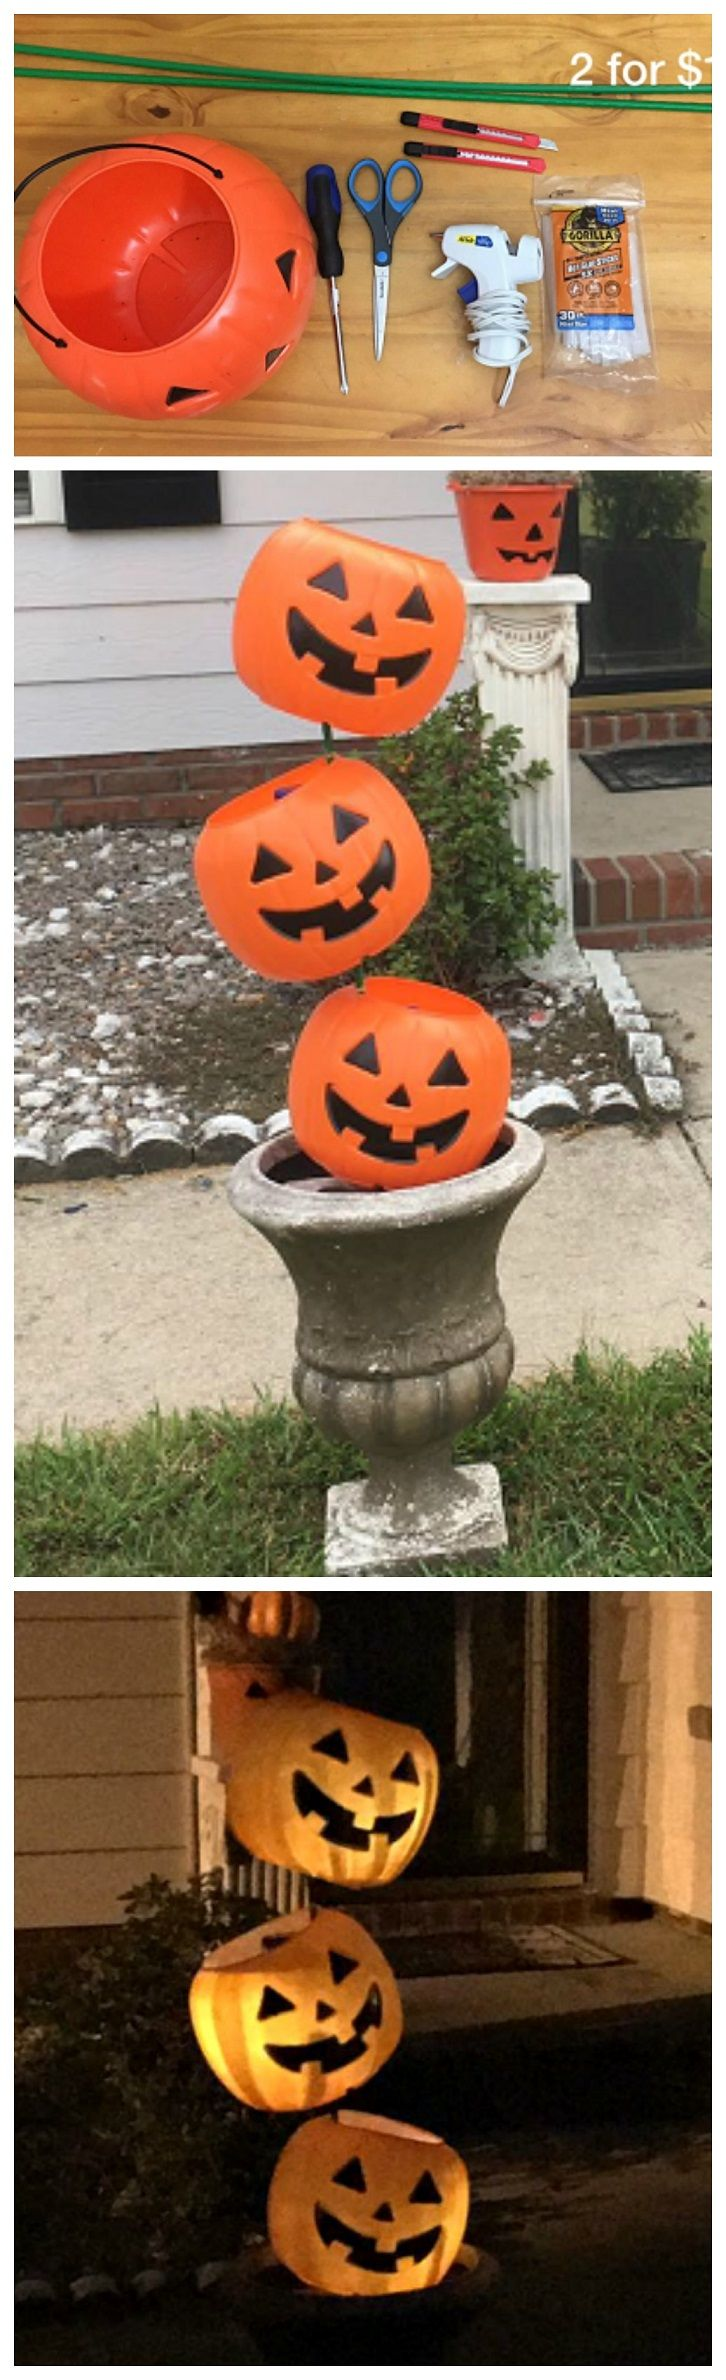 make a plastic pumpkin pail tipsy decoration for halloween such a cheap and easy craft - Do It Yourself Halloween Decorations